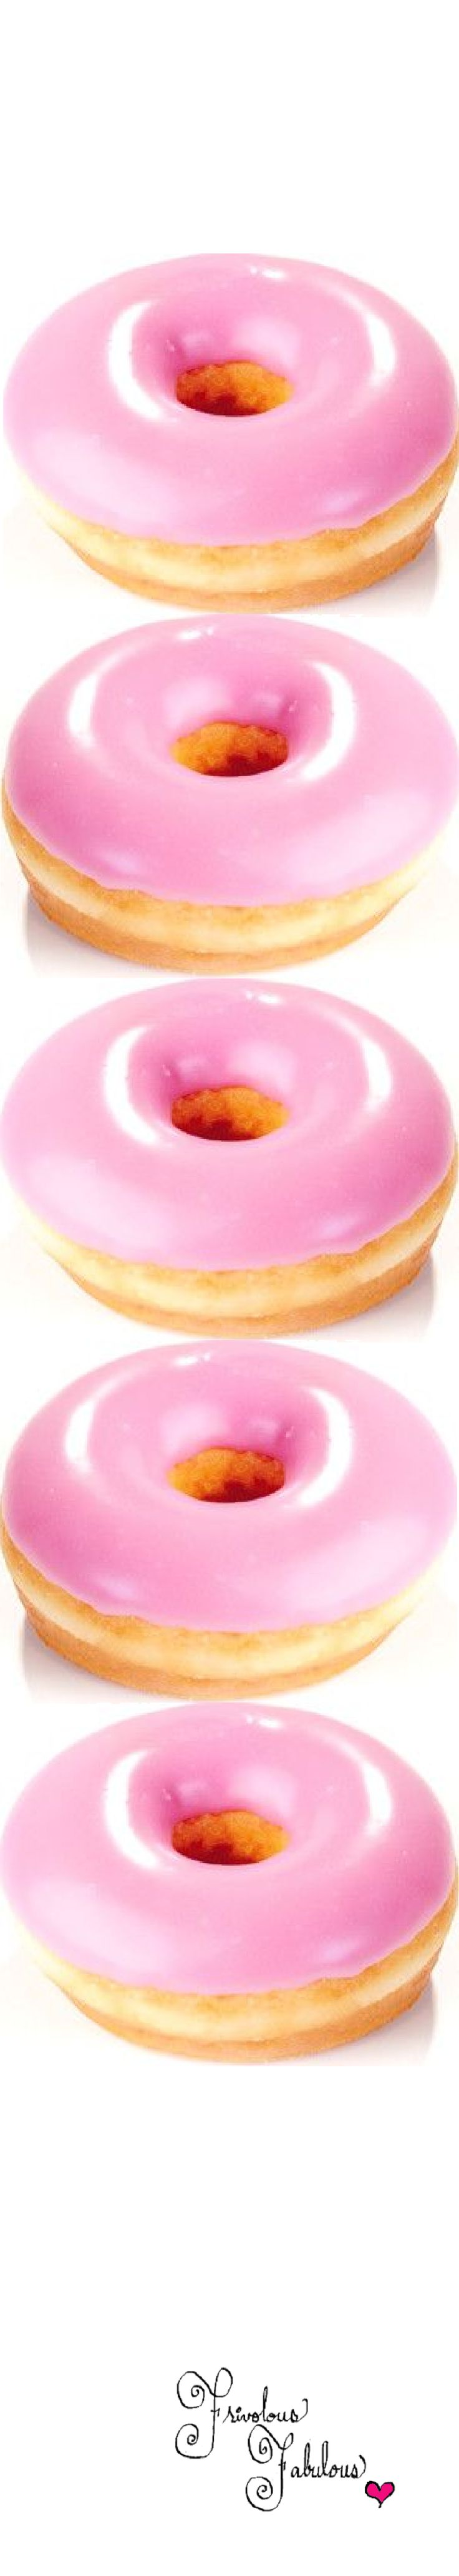 Frivolous Fabulous - Pretty Pink Doughnuts and Pink Hot Chocolate for Everyone! #pink #doughnuts